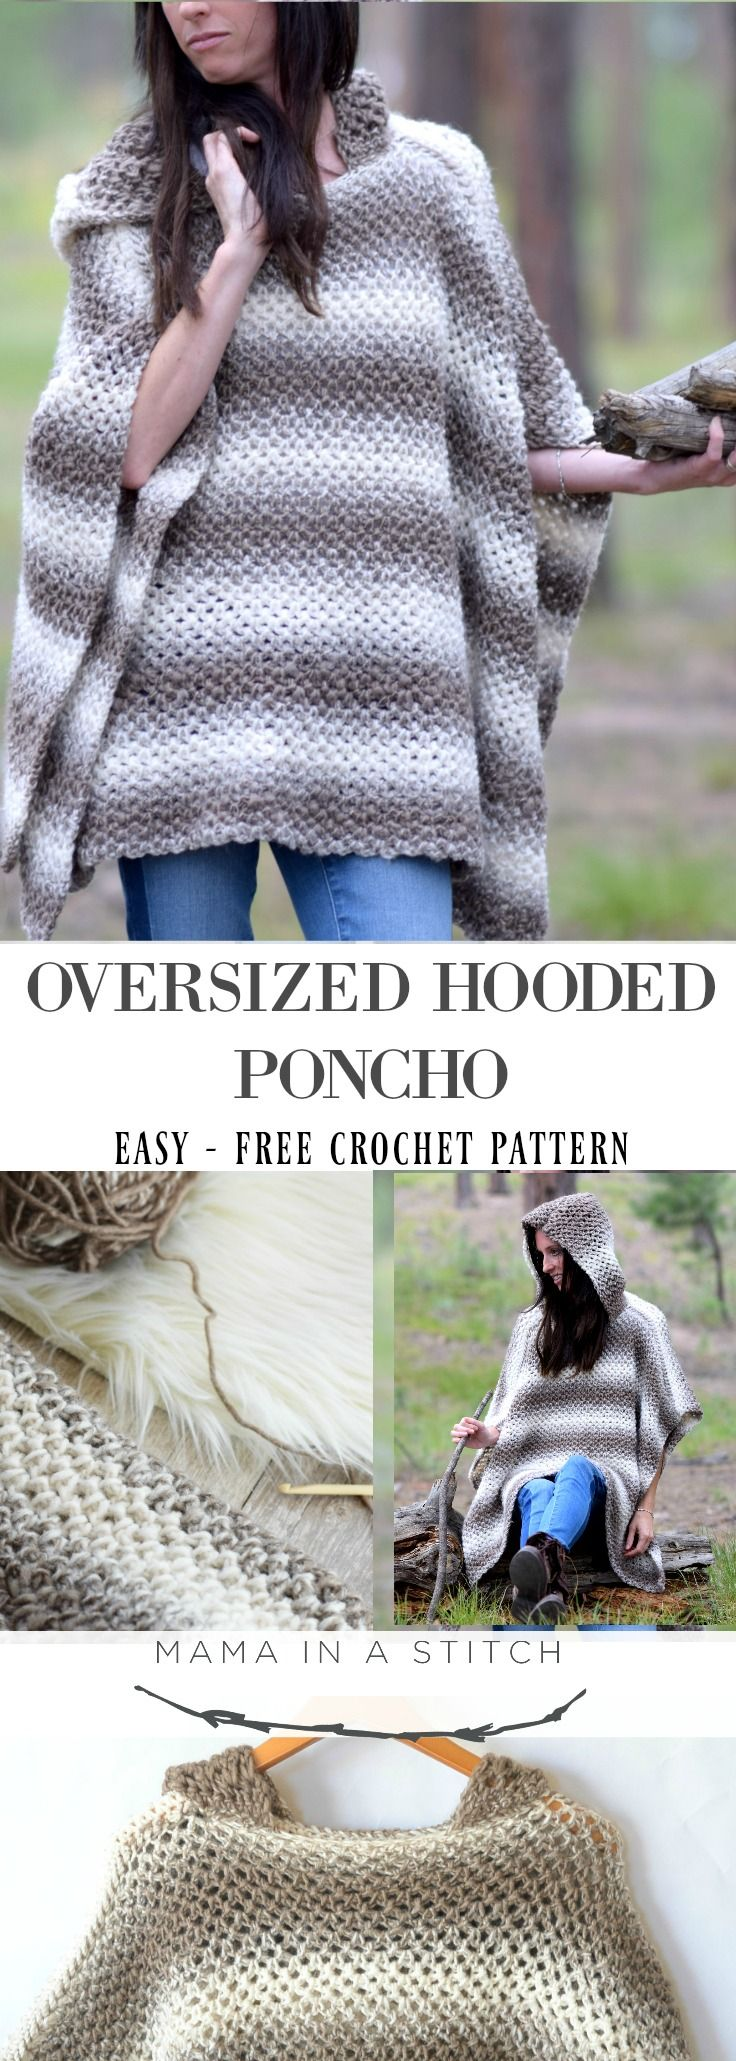 Driftwood Oversized Crochet Hooded Poncho Pattern via @MamaInAStitch This free crochet pattern is so easy and it looks so cozy! Perfect for fall or winter. So simple yet pretty! #crochet pattern #diy #crafts #free